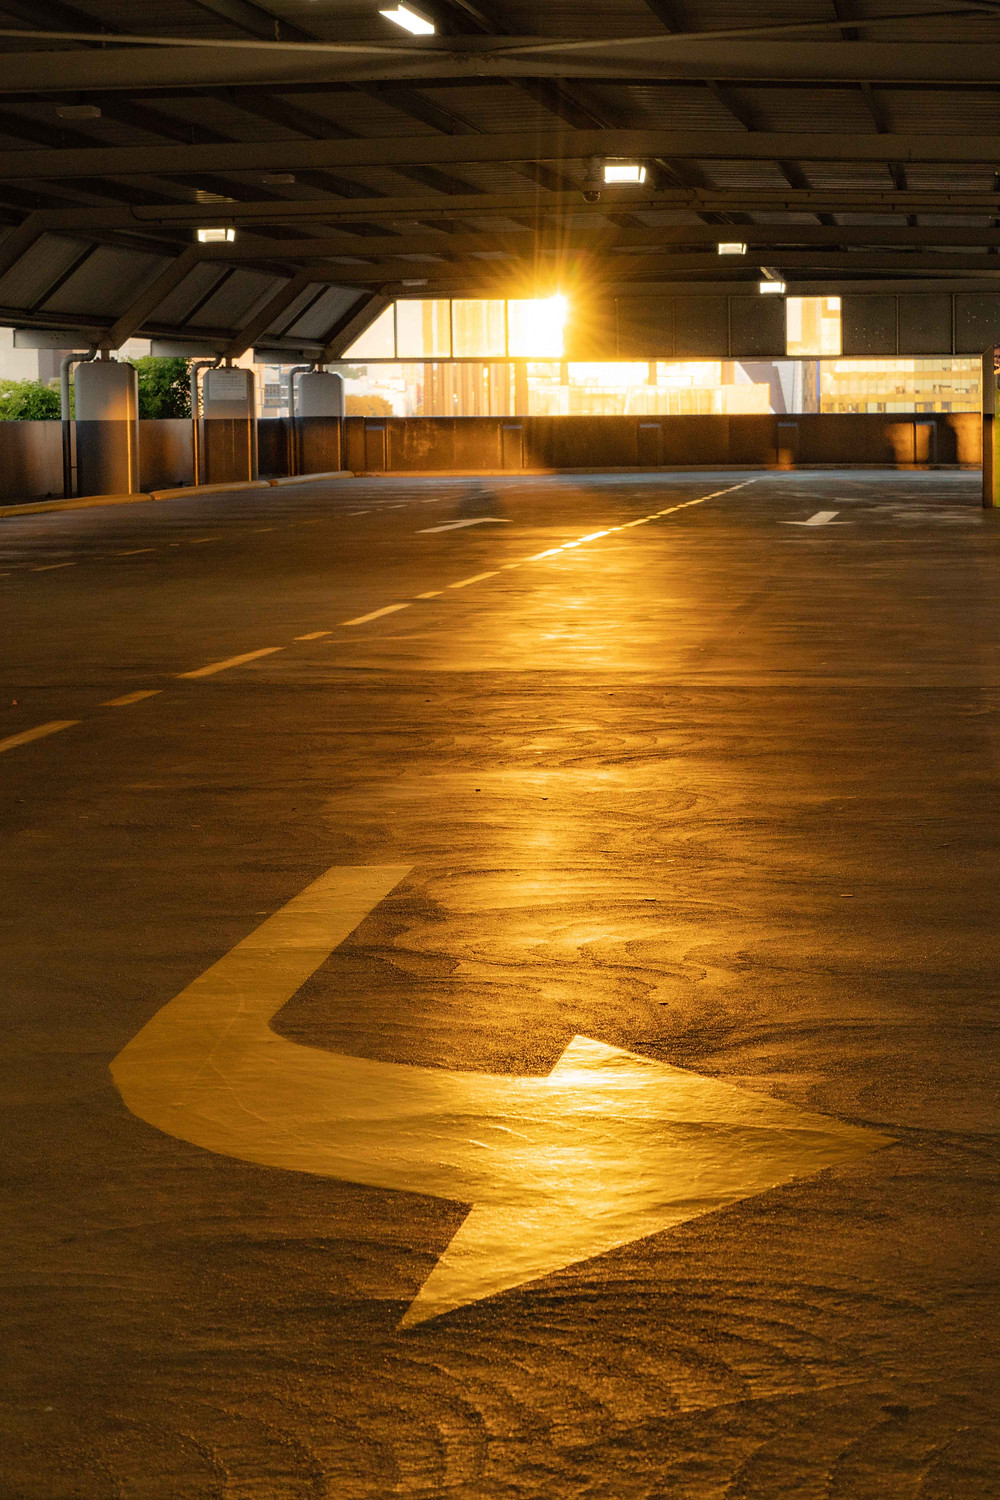 An empty parking lot in the Perth CBD - Photo credits - Harry Cunningham